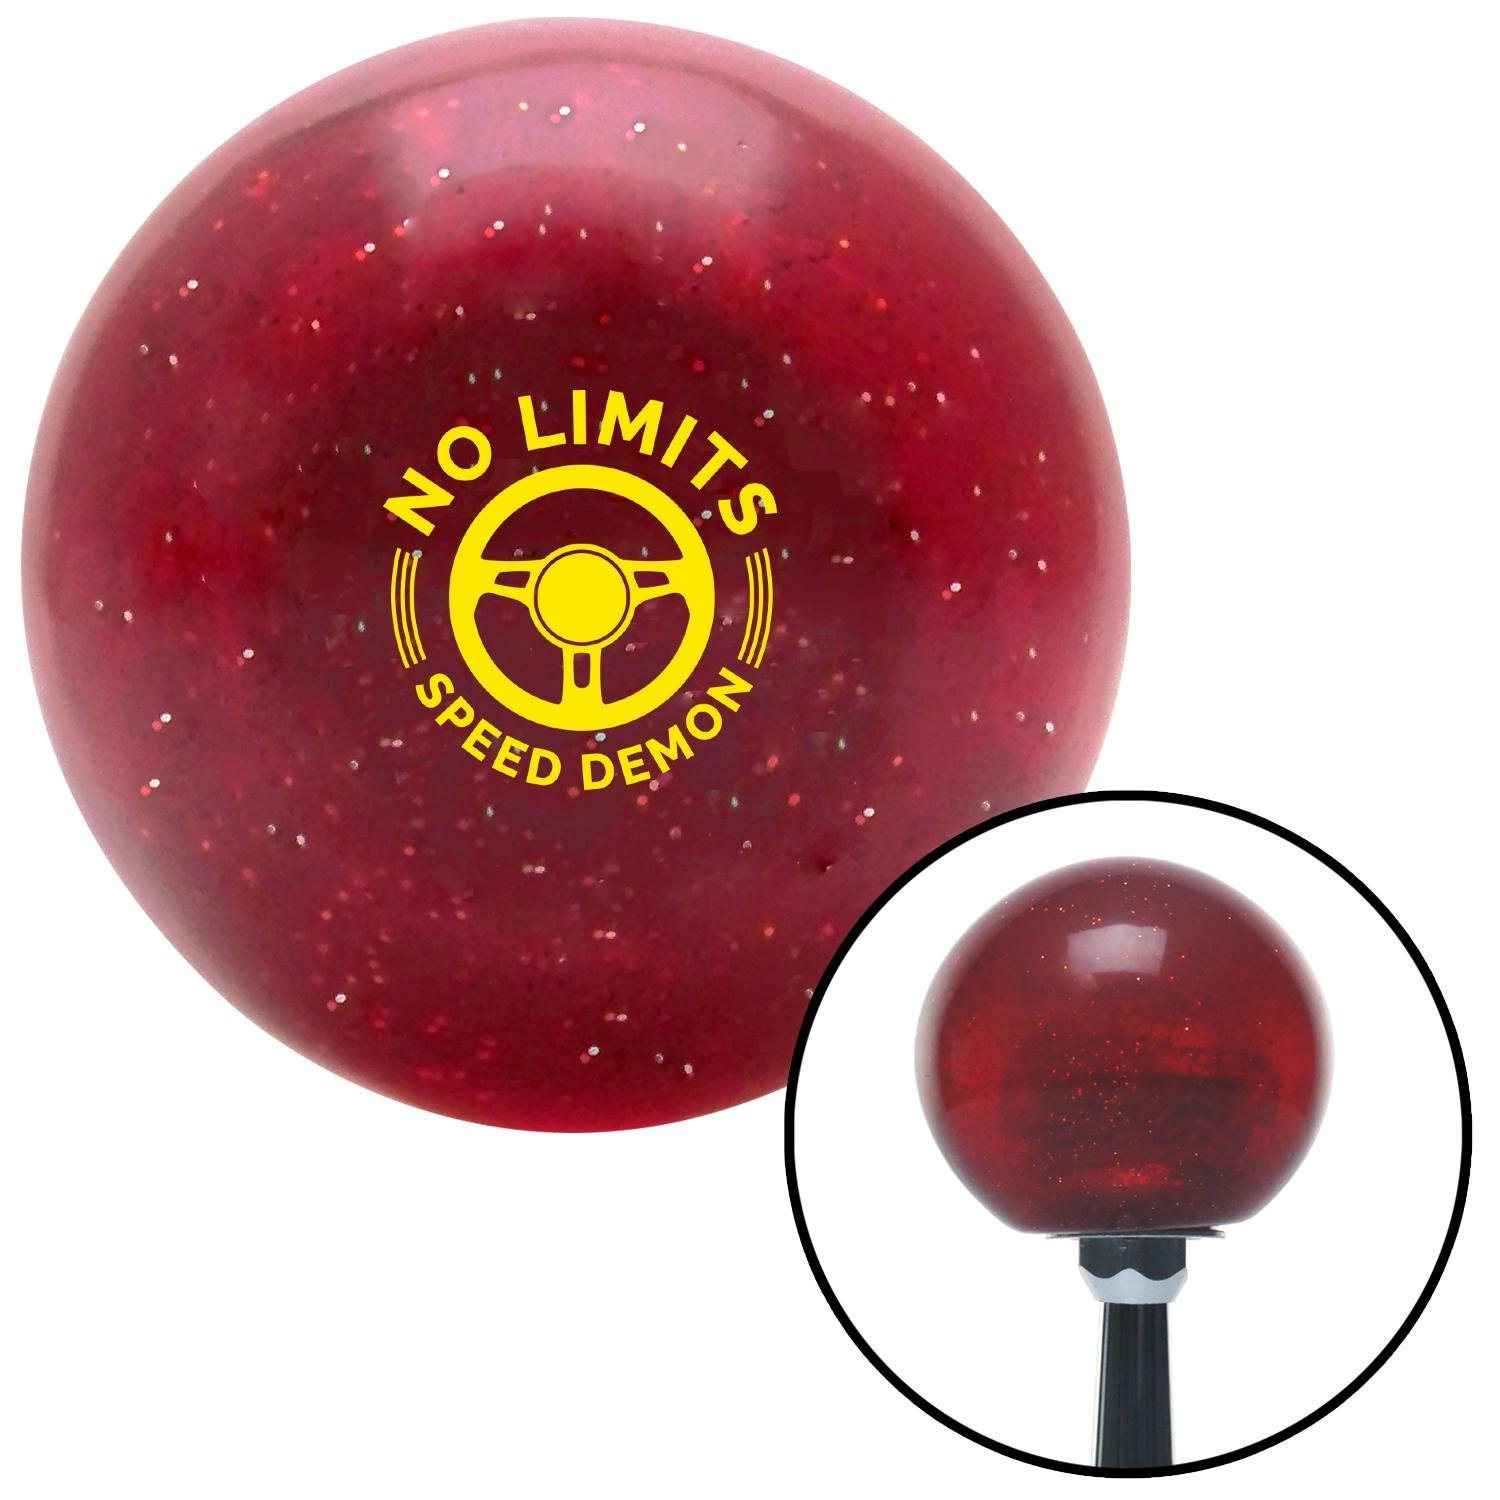 American Shifter 283030 Shift Knob Company Yellow No Limits Red Metal Flake with M16 x 1.5 Insert